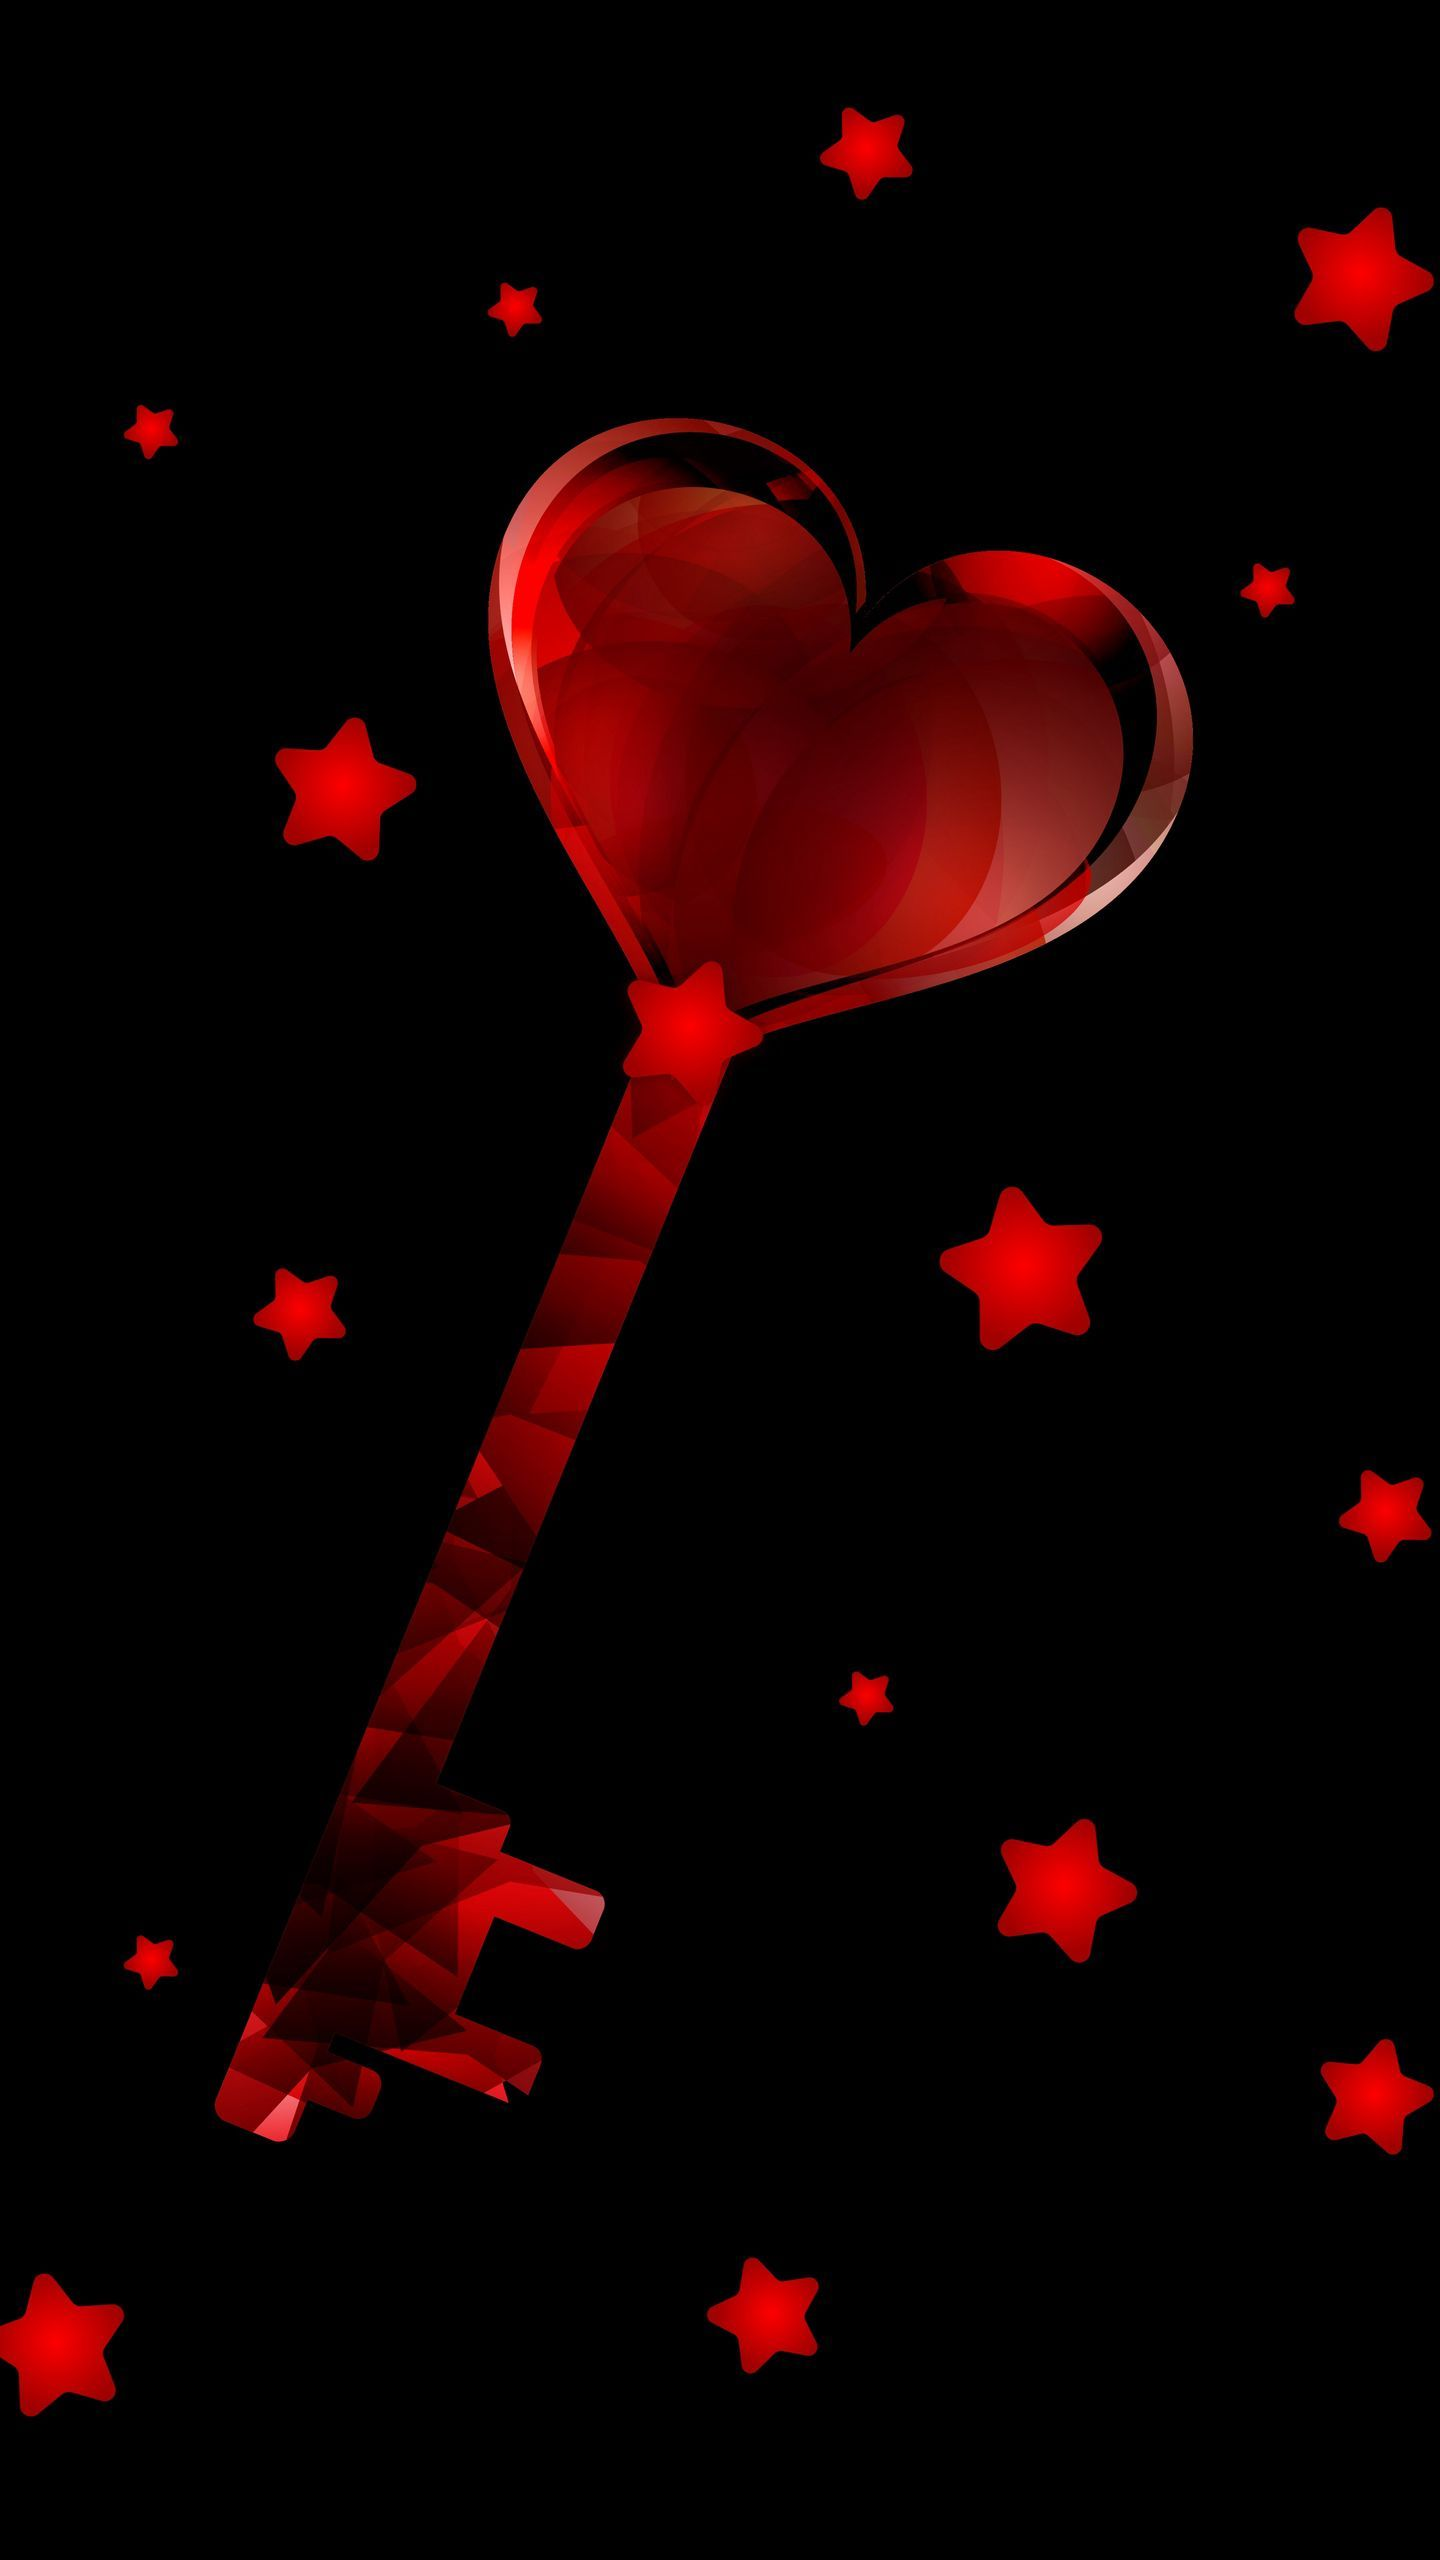 See My Collection Of Lovely Iphone And Android Love Wallpapers And Background Images In Ultra High Definition Ge Heart Wallpaper Love Keyboard Red Wallpaper